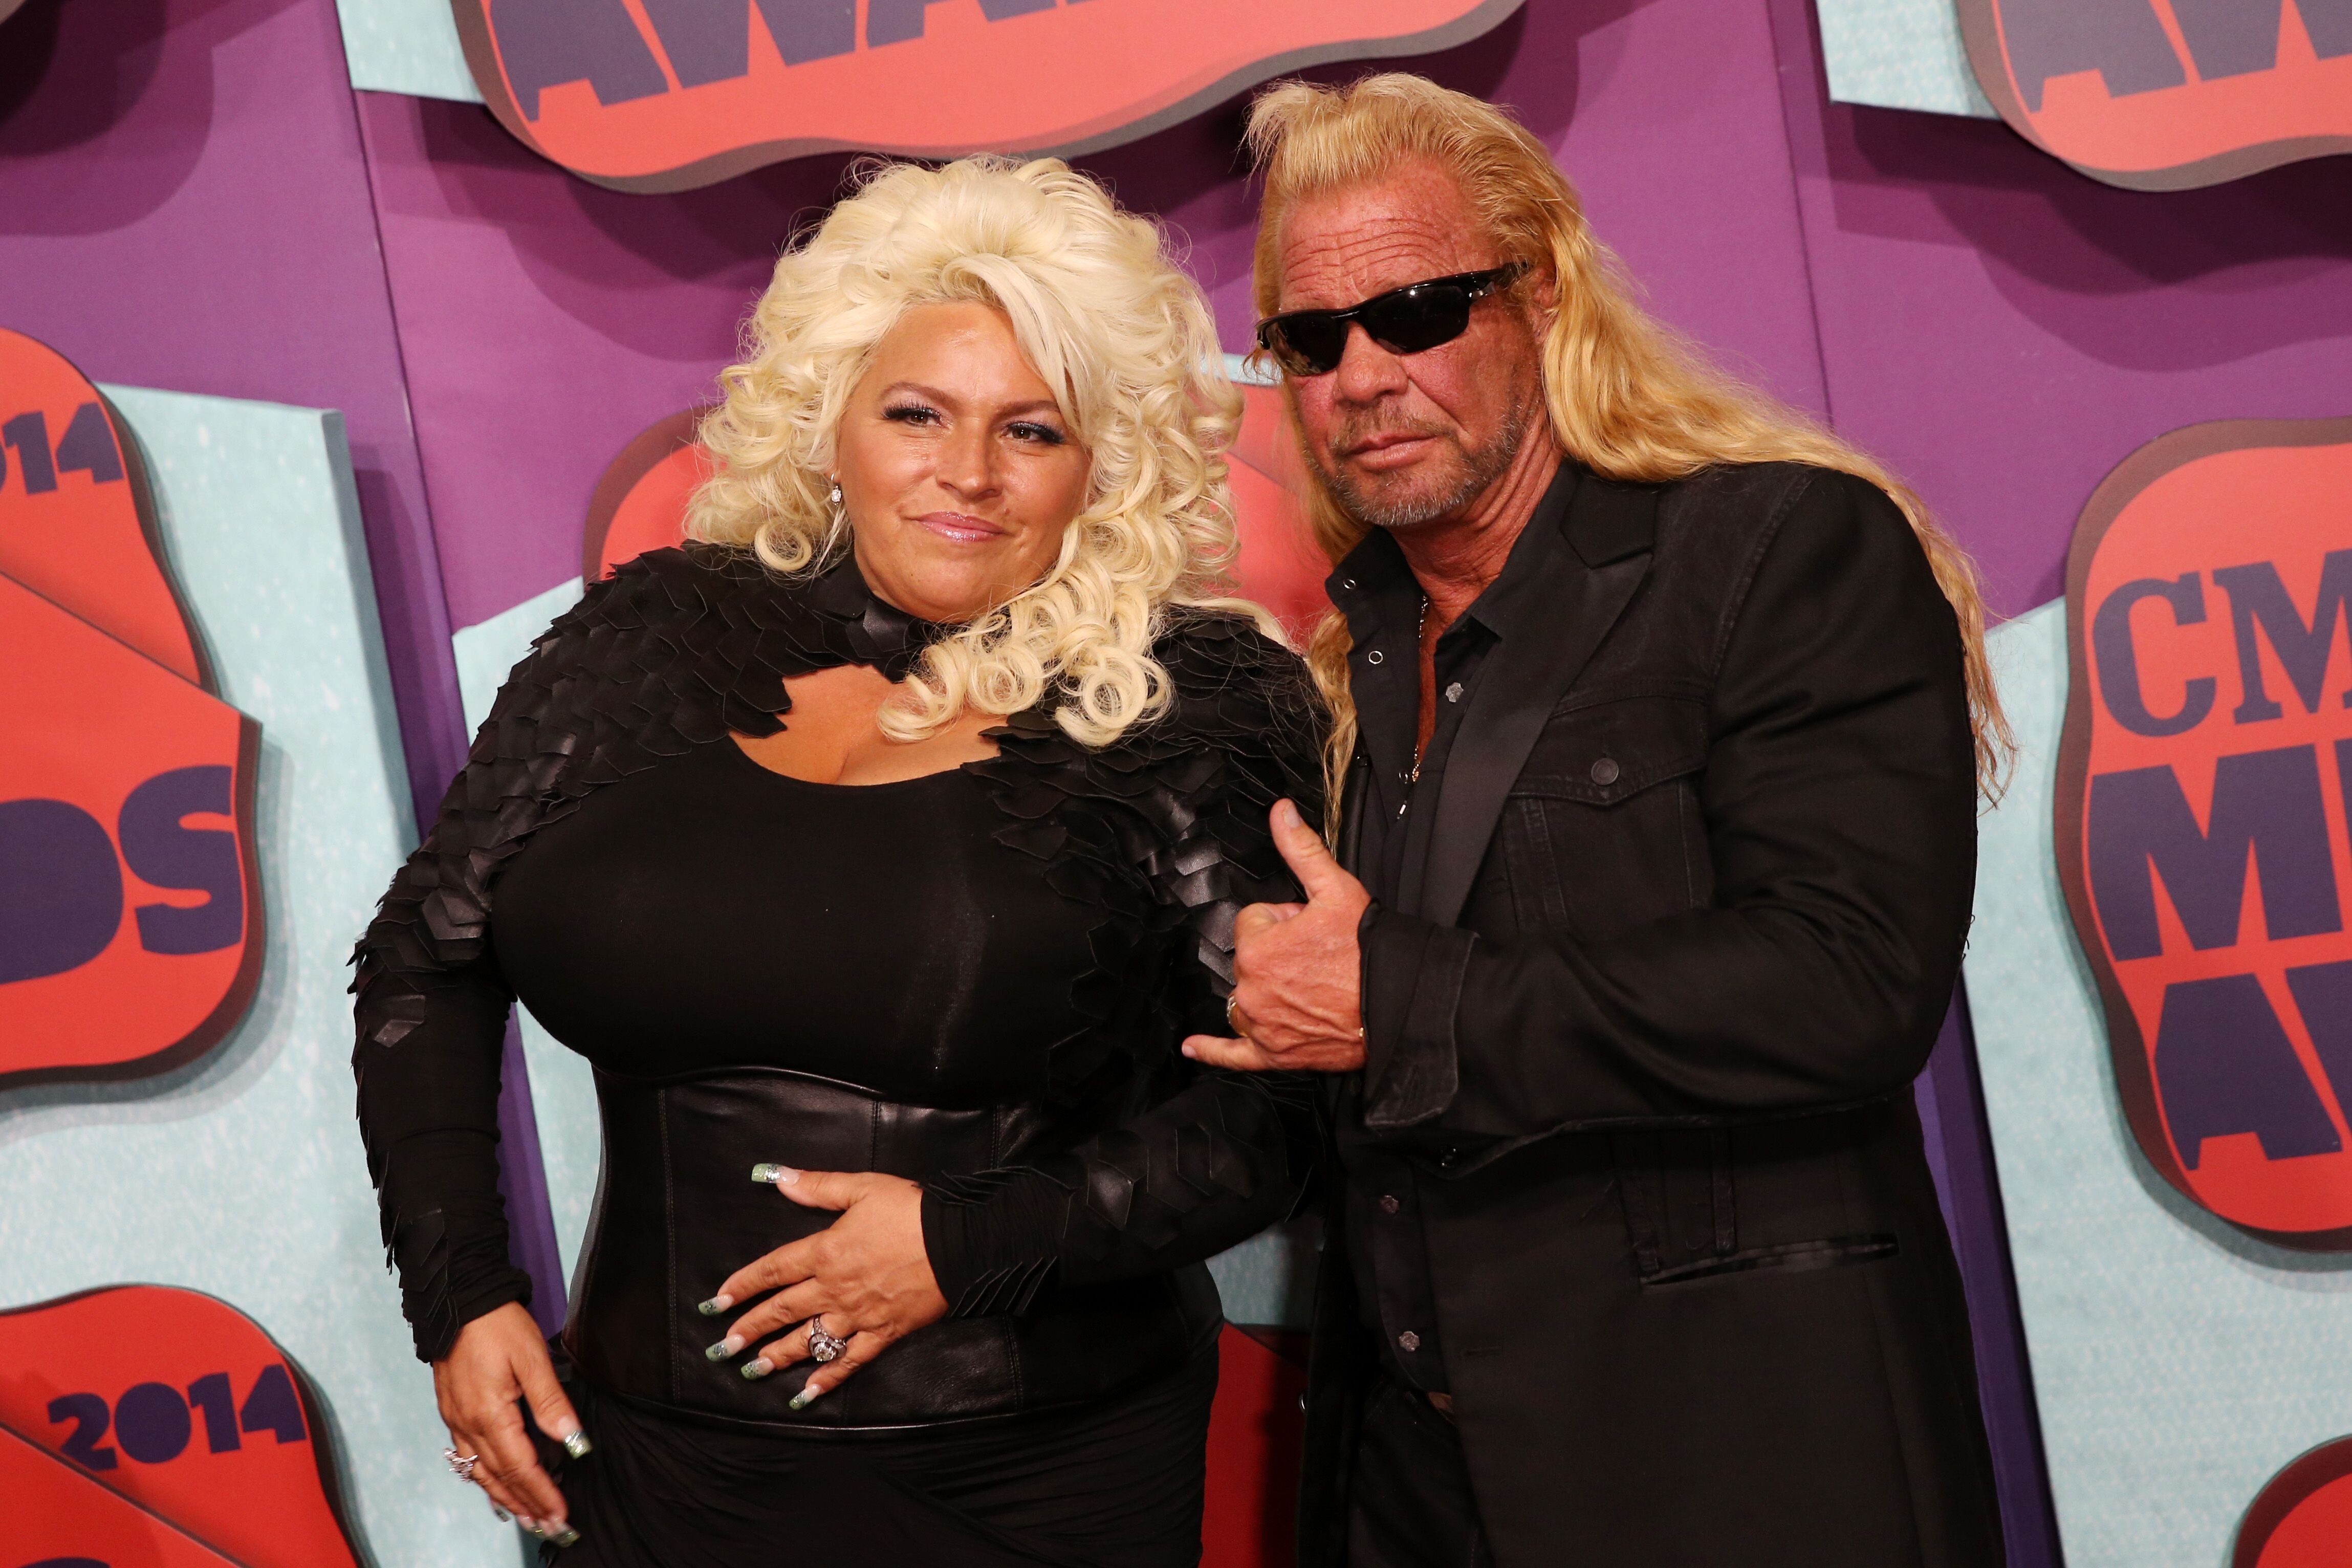 Beth and Duane Chapman at the CMT Music Awards at the Bridgestone Arena on June 4, 2014, in Nashville, Tennessee   Photo: Terry Wyatt/FilmMagic/Getty Images